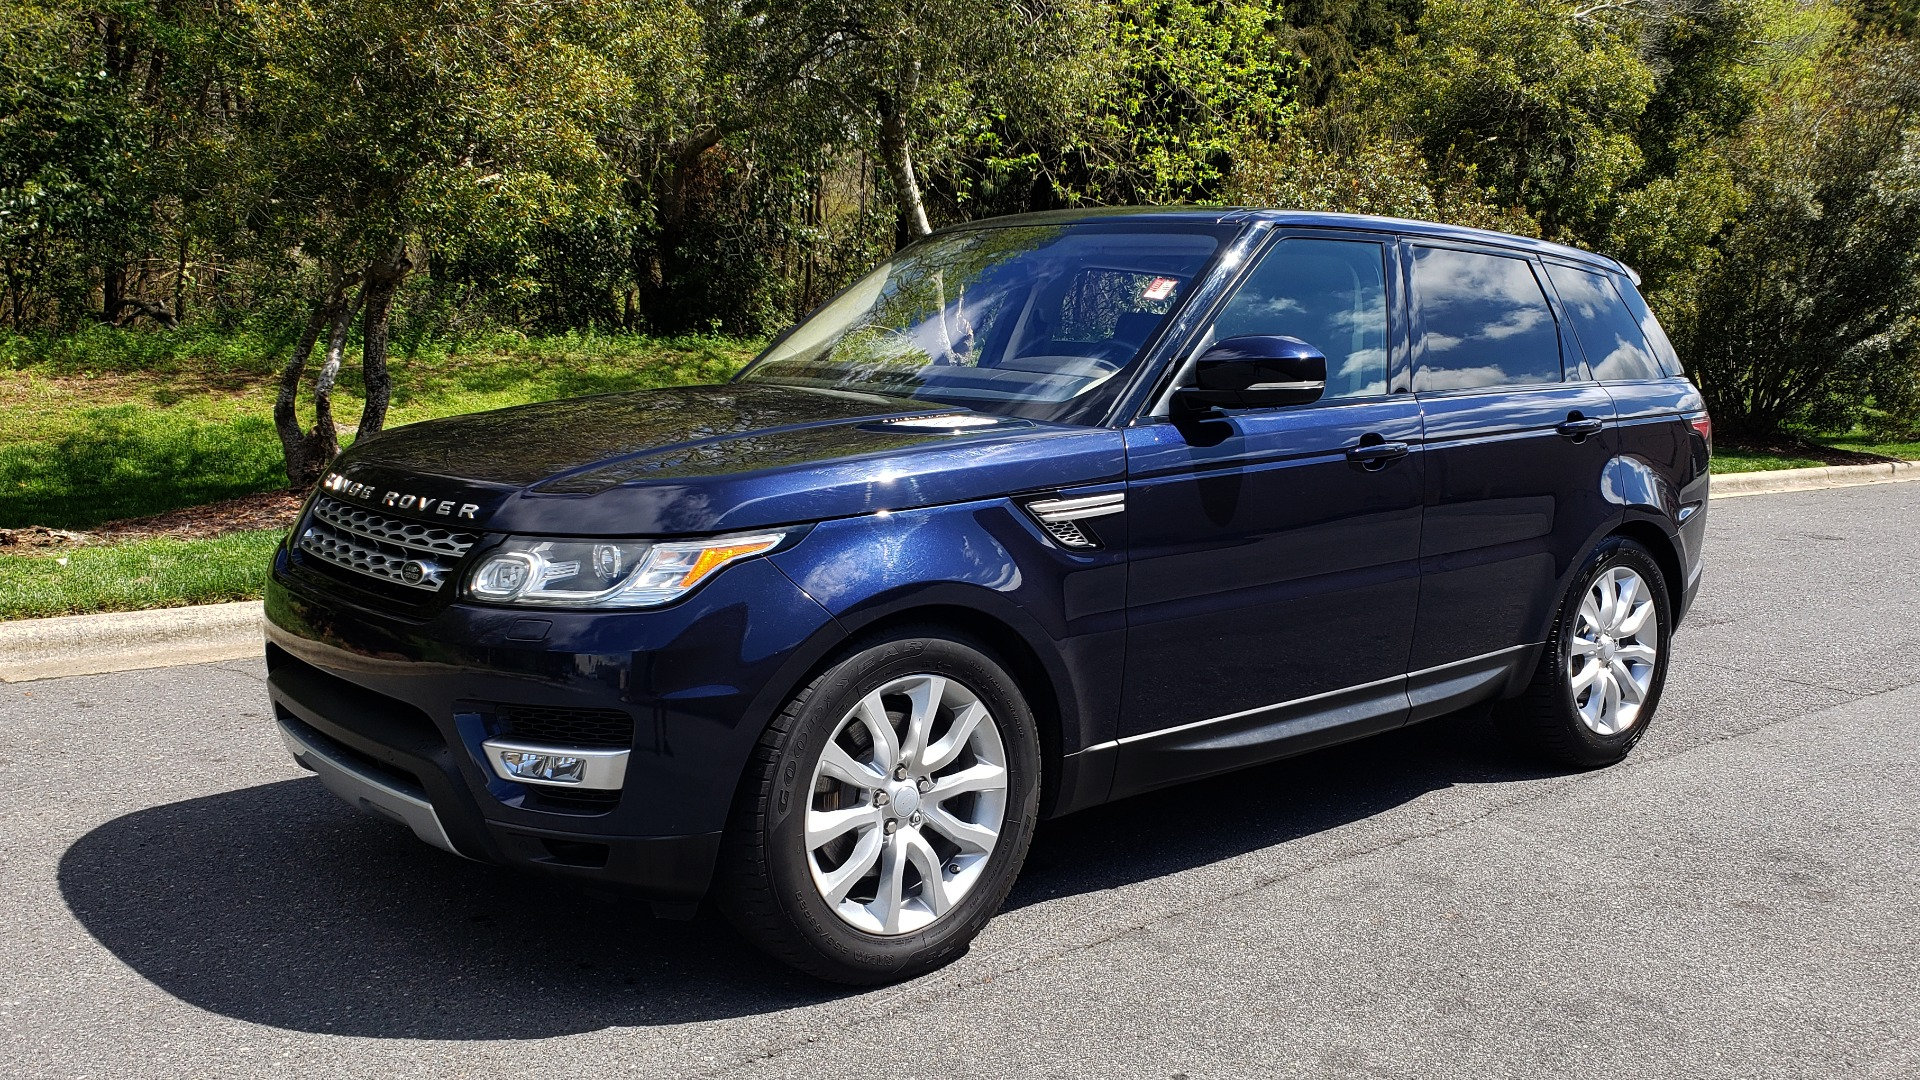 Used 2016 Land Rover RANGE ROVER SPORT SC V6 HSE / 4WD / NAV / PANO-ROOF / REARVIEW / CLIMATE & VISIBILITY for sale Sold at Formula Imports in Charlotte NC 28227 1